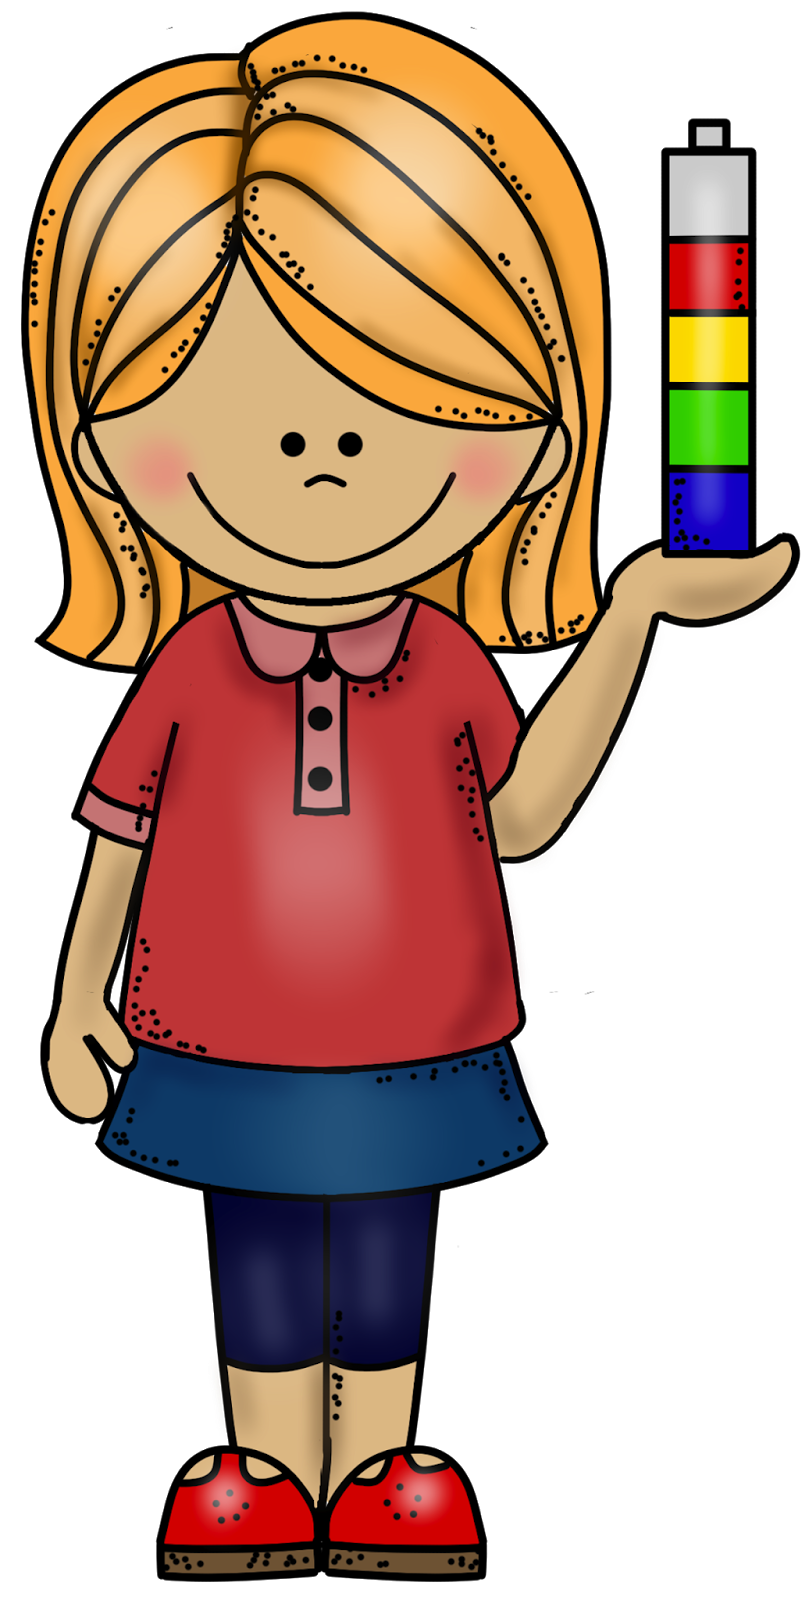 Draw clipart educational assessment. Math concepts assessments number